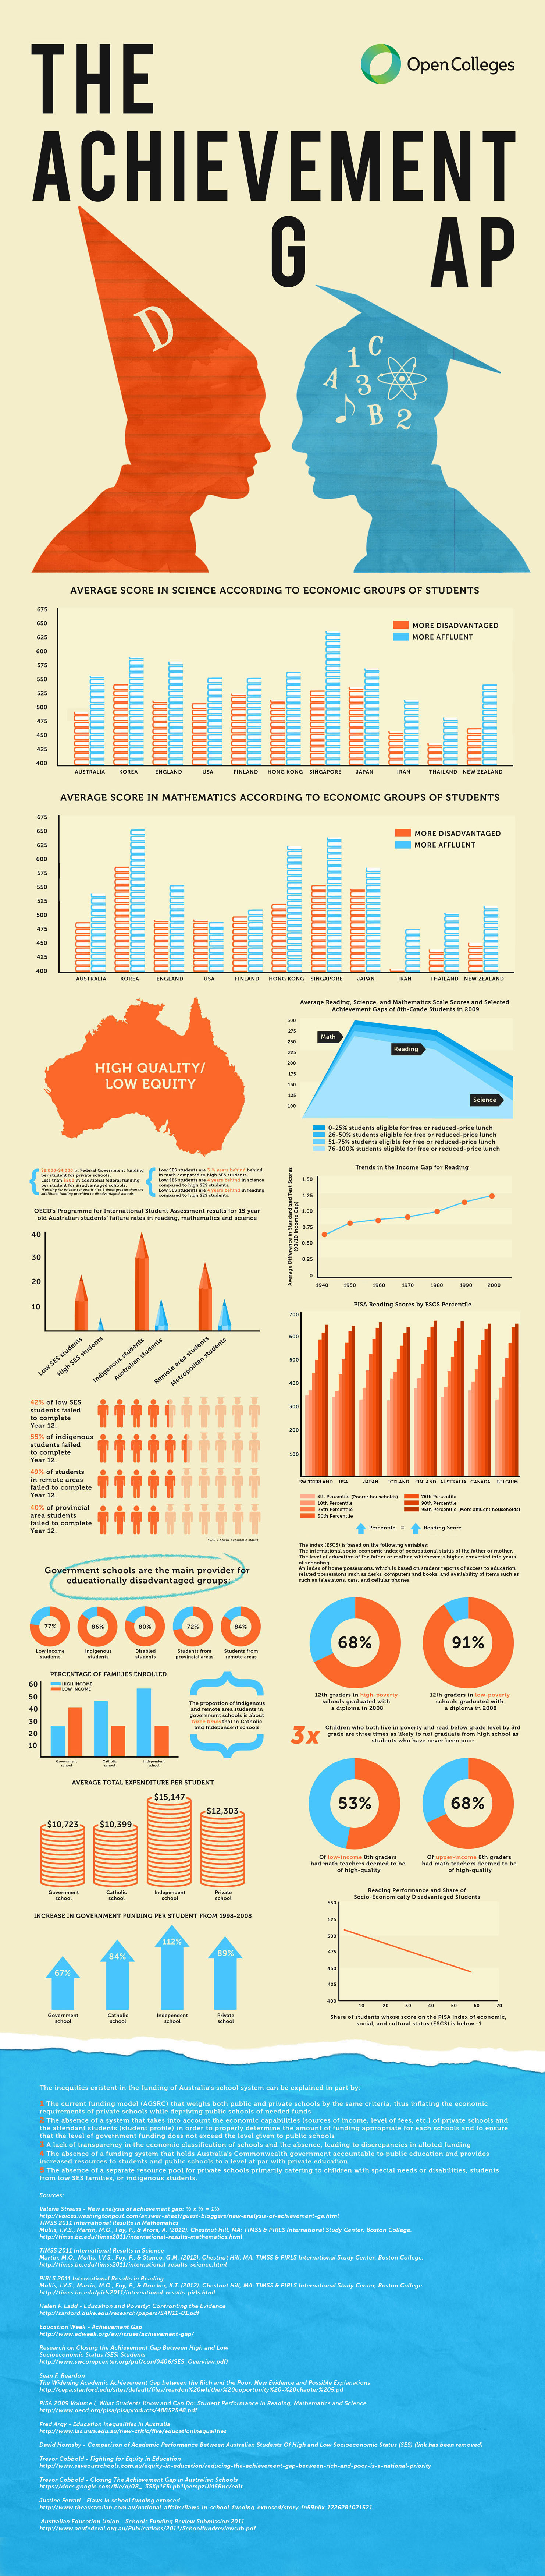 Achievement Gap Infographic 2